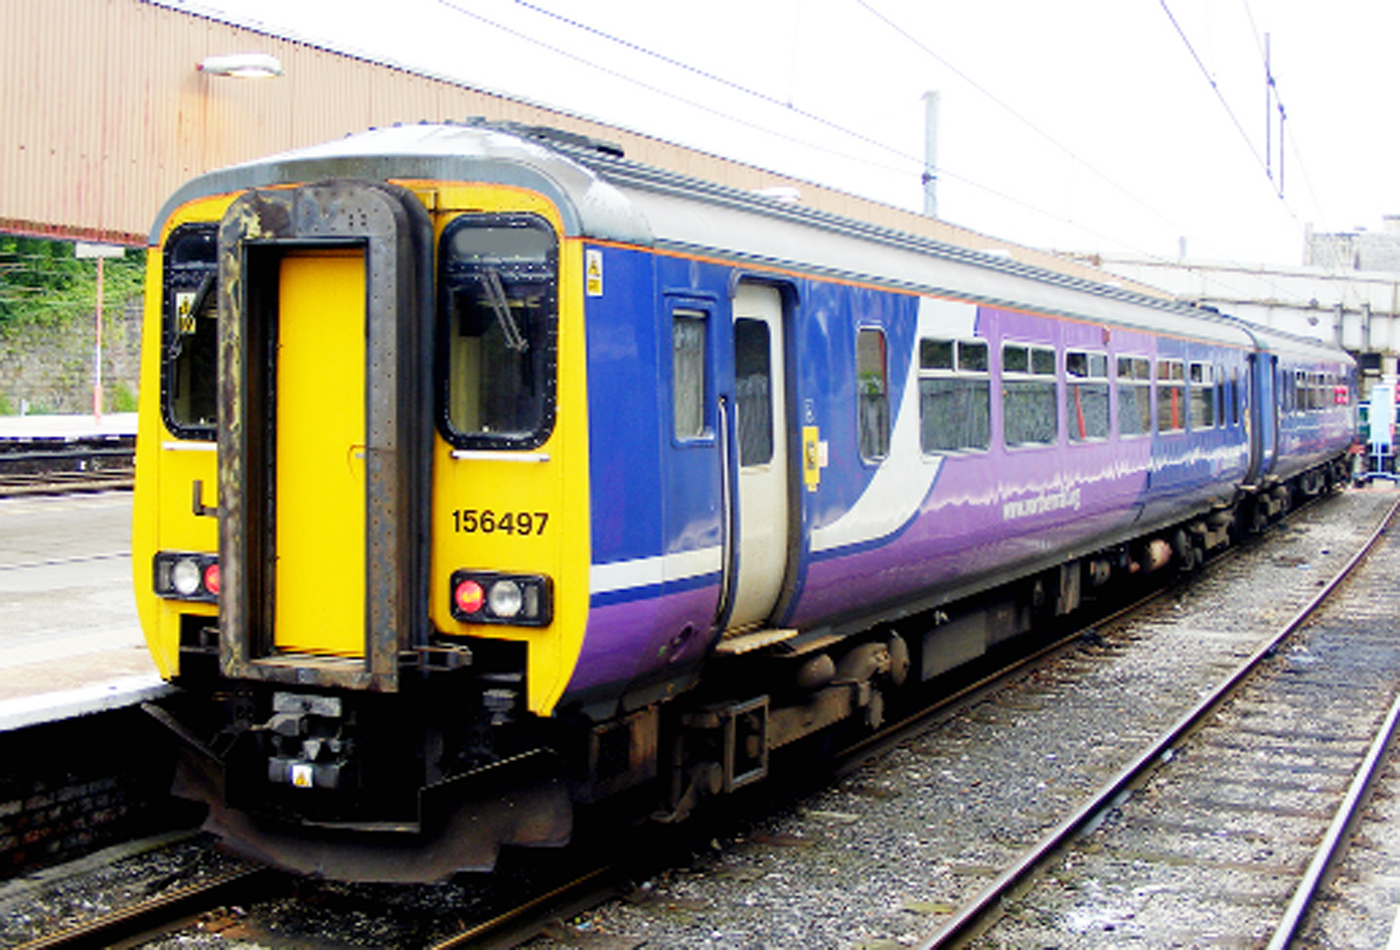 Northern Rail services running from St Helens between Liverpool will be disrupted